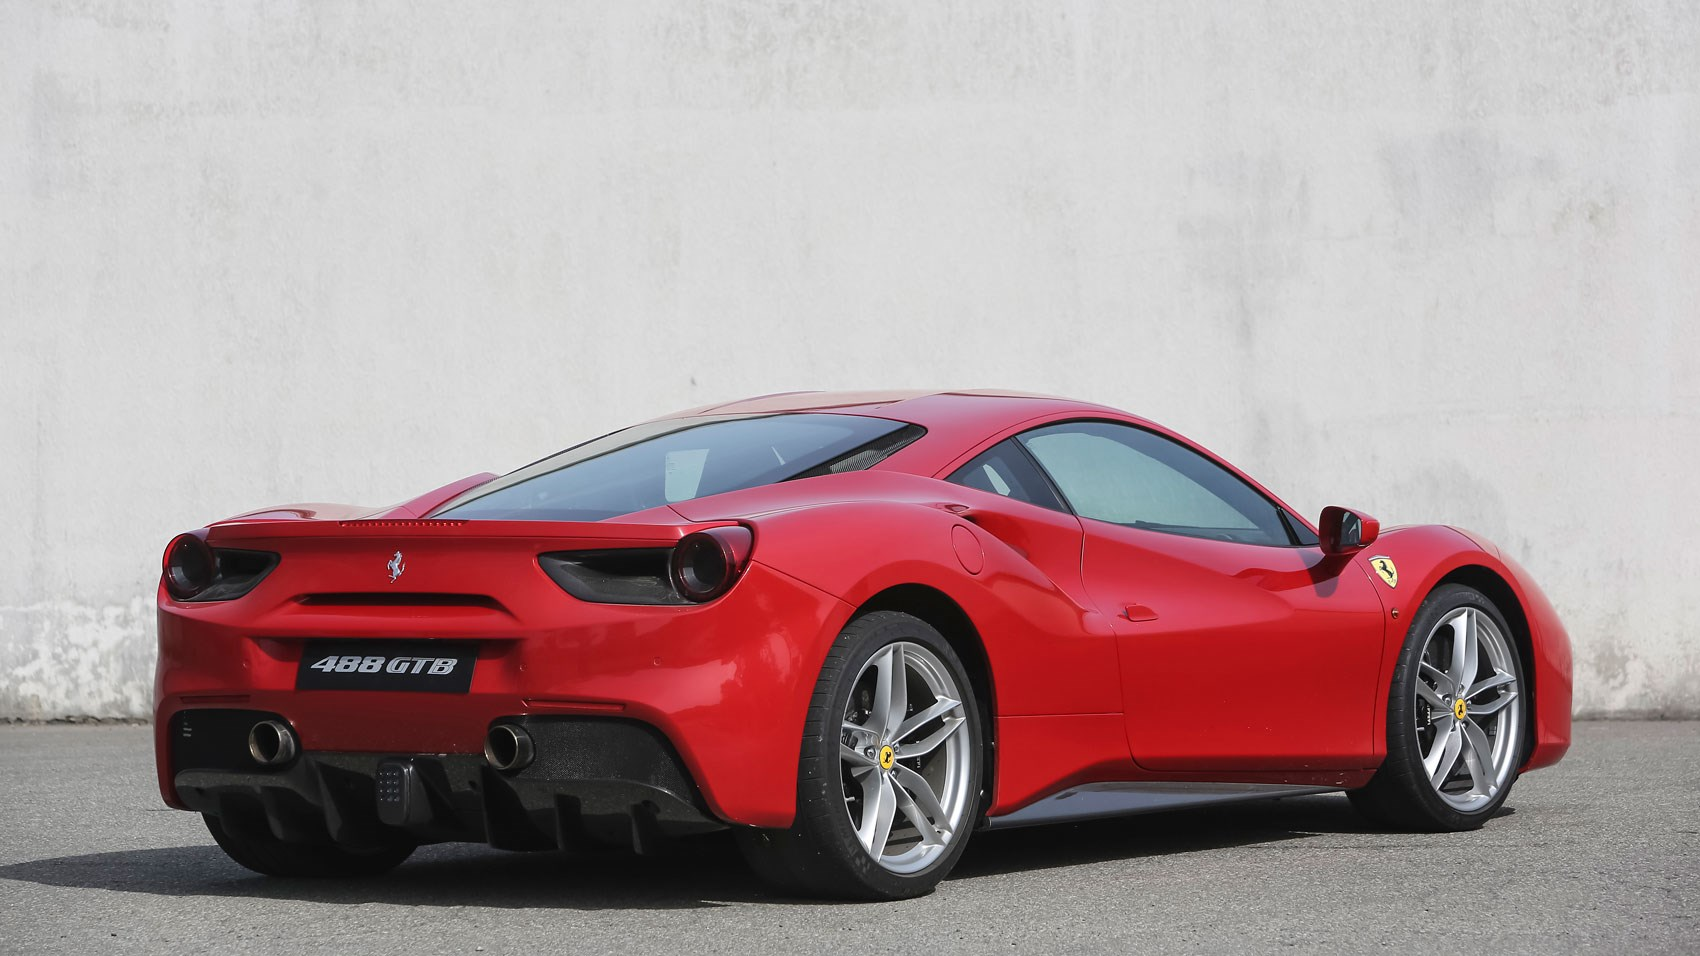 ferrari 488 gtb 2015 review by car magazine. Black Bedroom Furniture Sets. Home Design Ideas